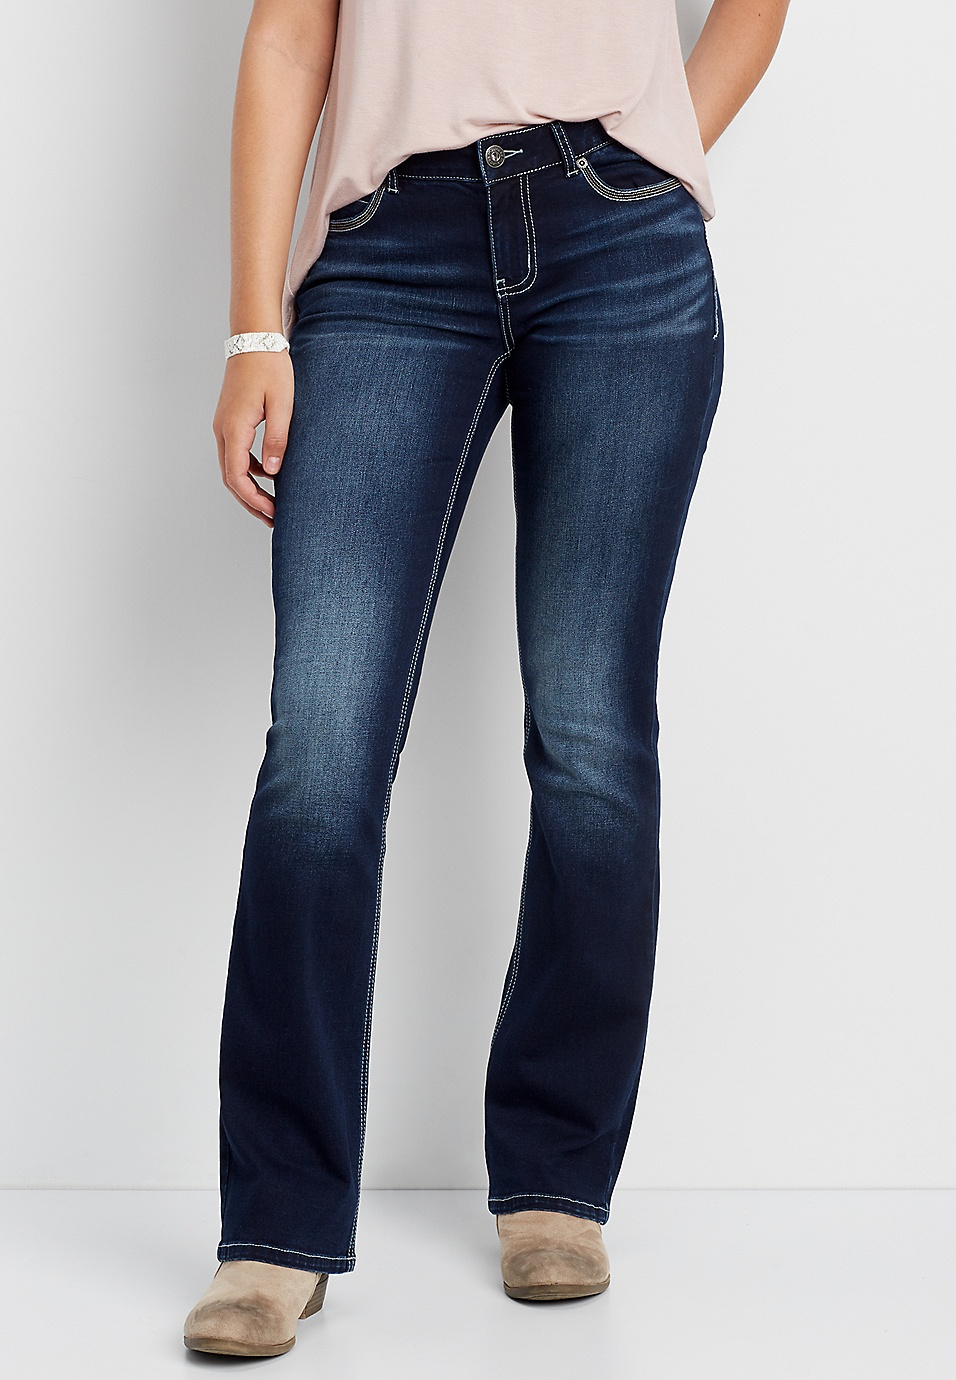 Denimflex Medium Wash Boot Cut Jean Maurices Shop Offer Online In China Buy Cheap Pay With Paypal DeDrBzejm7